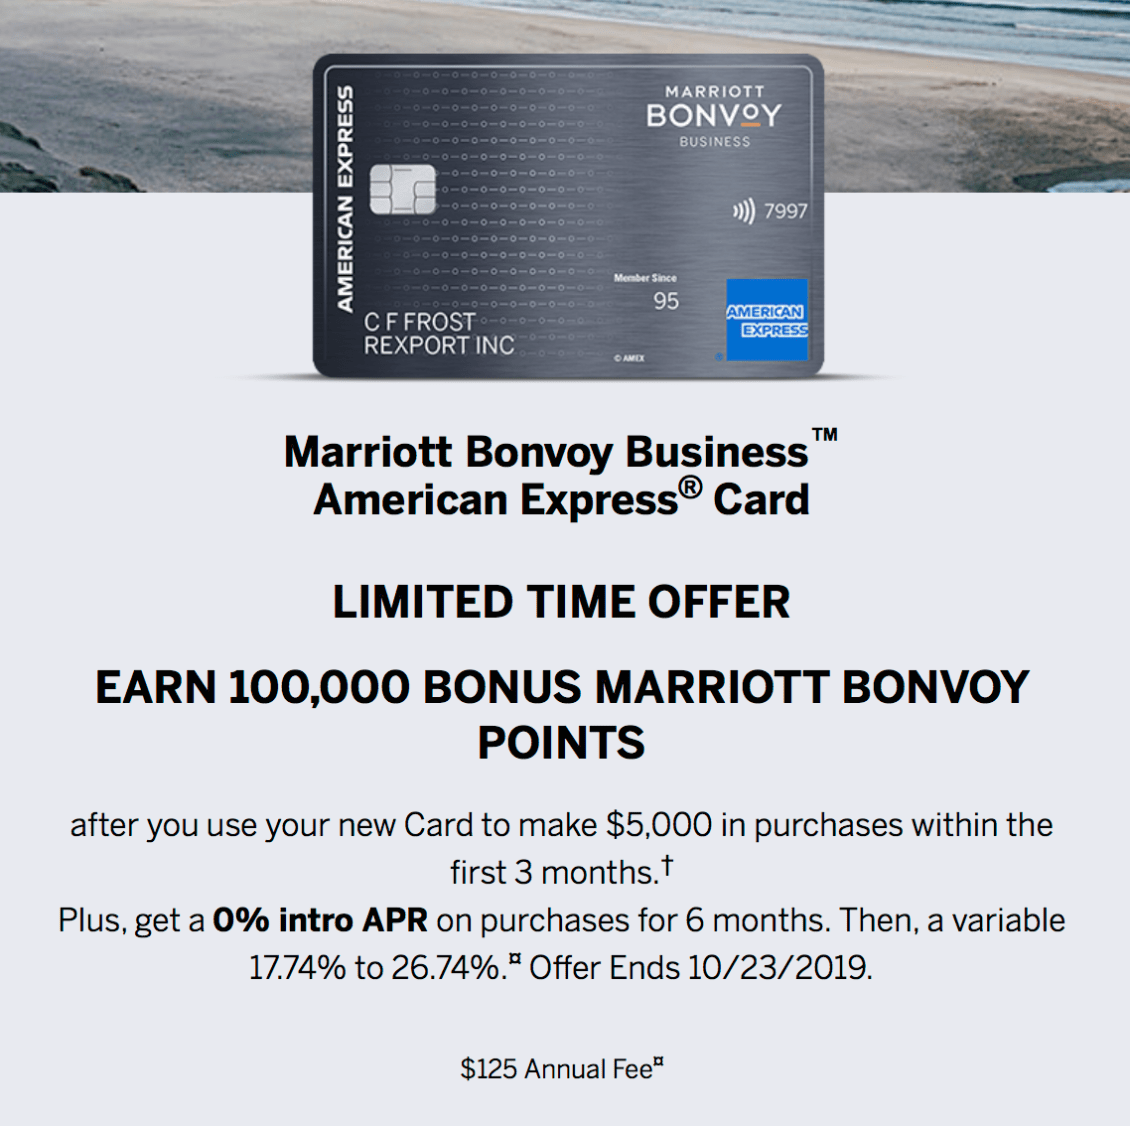 Amex Marriott Bonvoy Business Credit Card Review Formerly Amex Spg Business 2019 9 Update